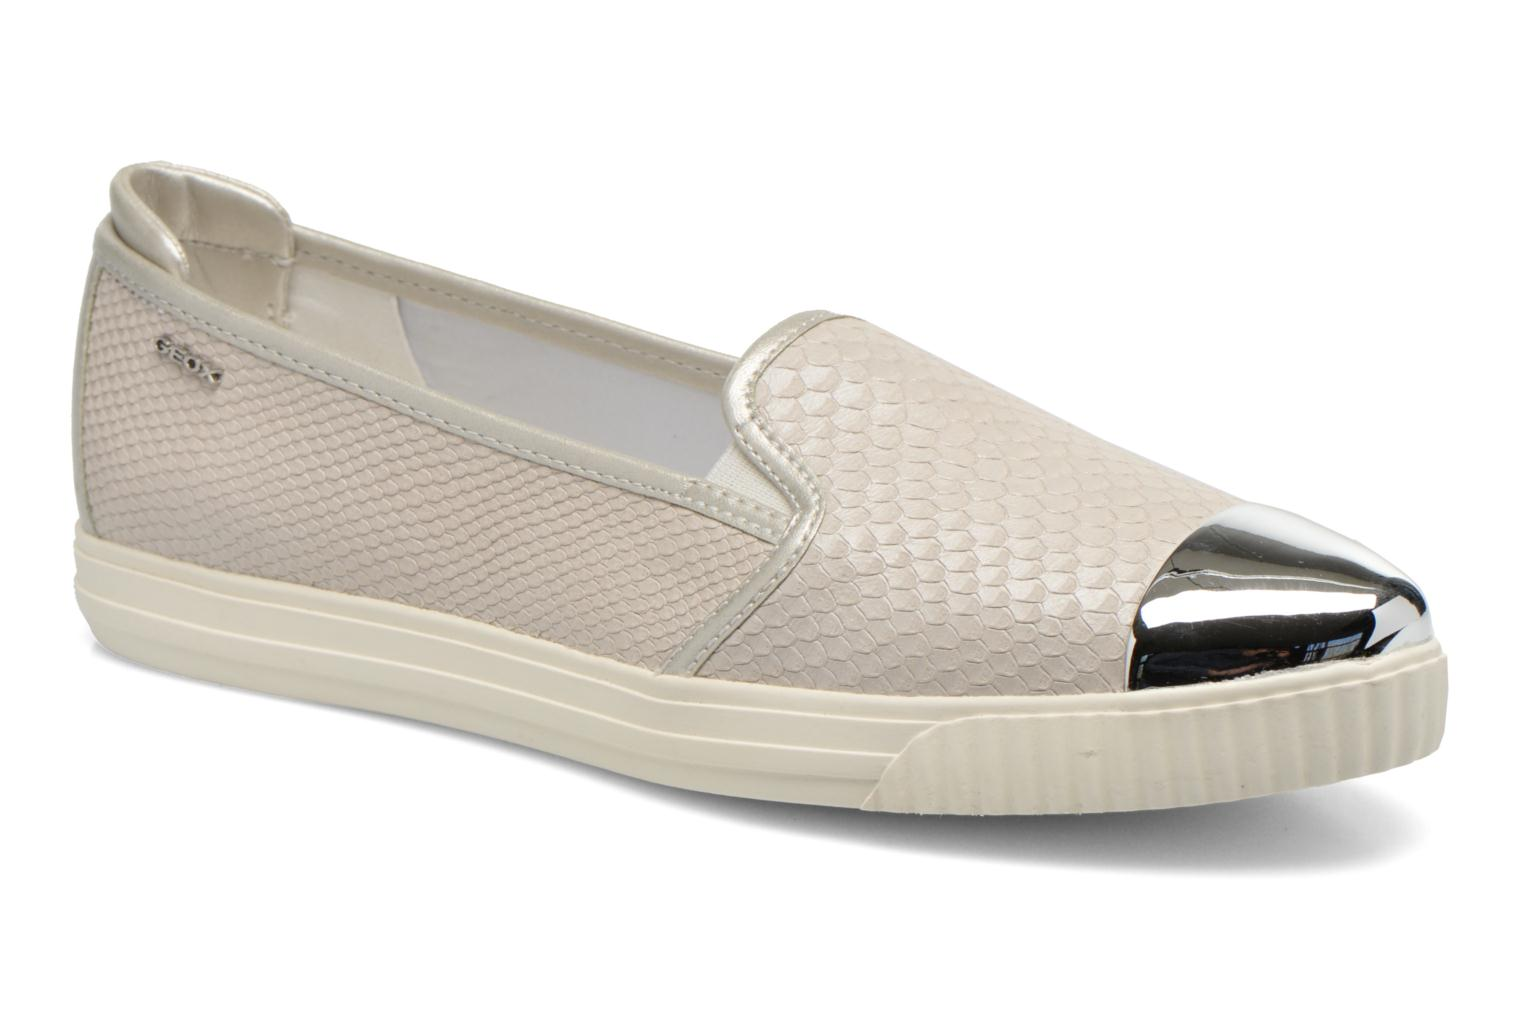 Marques Chaussure femme Geox femme D AMALTHIA D D621MD Off white/Silver